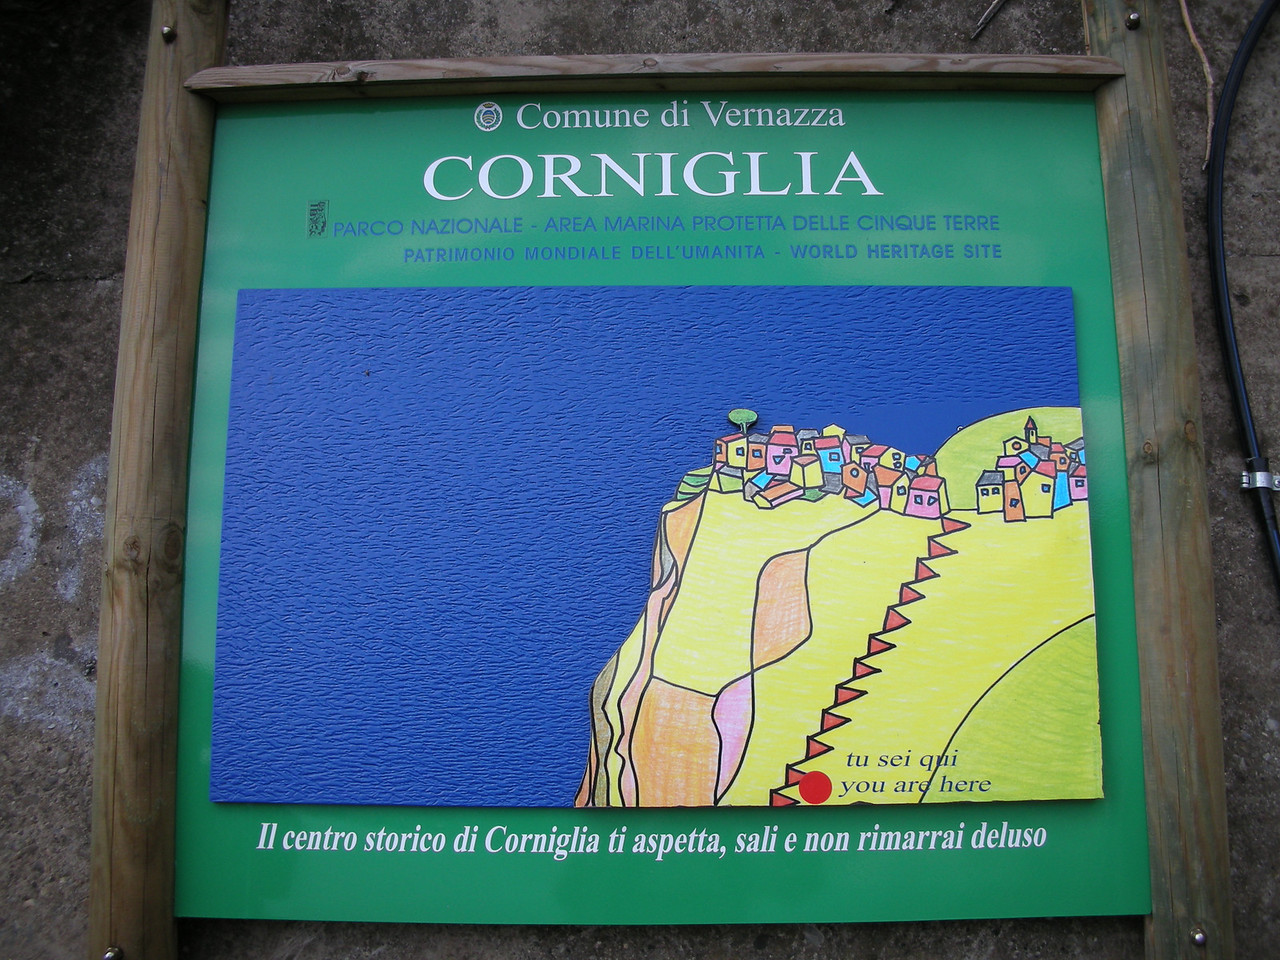 Map illustrating how many steps it is from the train station up to the town in Corniglia.